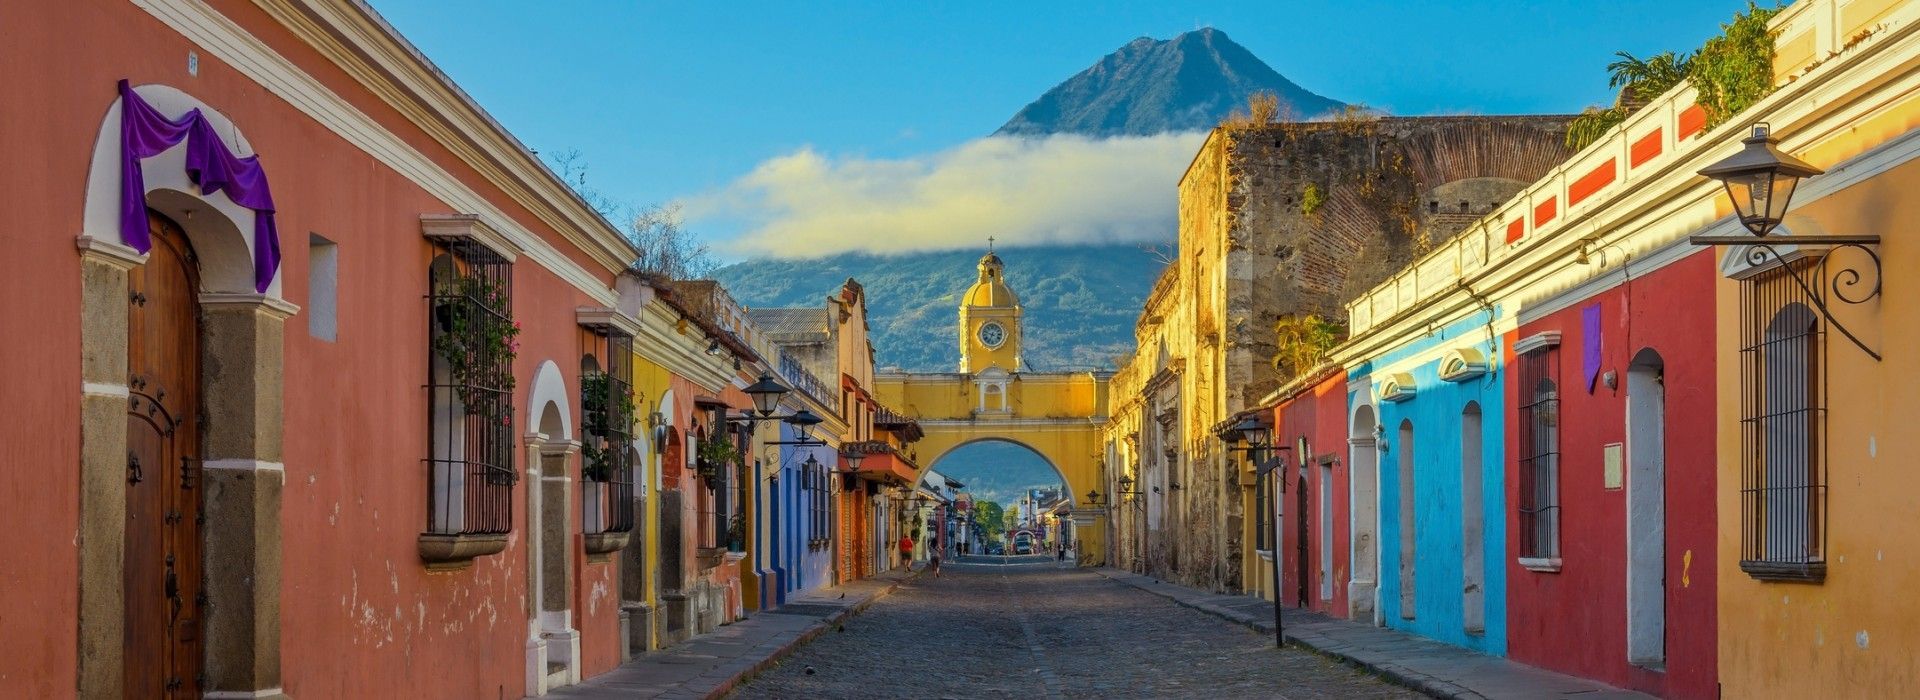 Food, wine, events and nightlife Tours in Central America